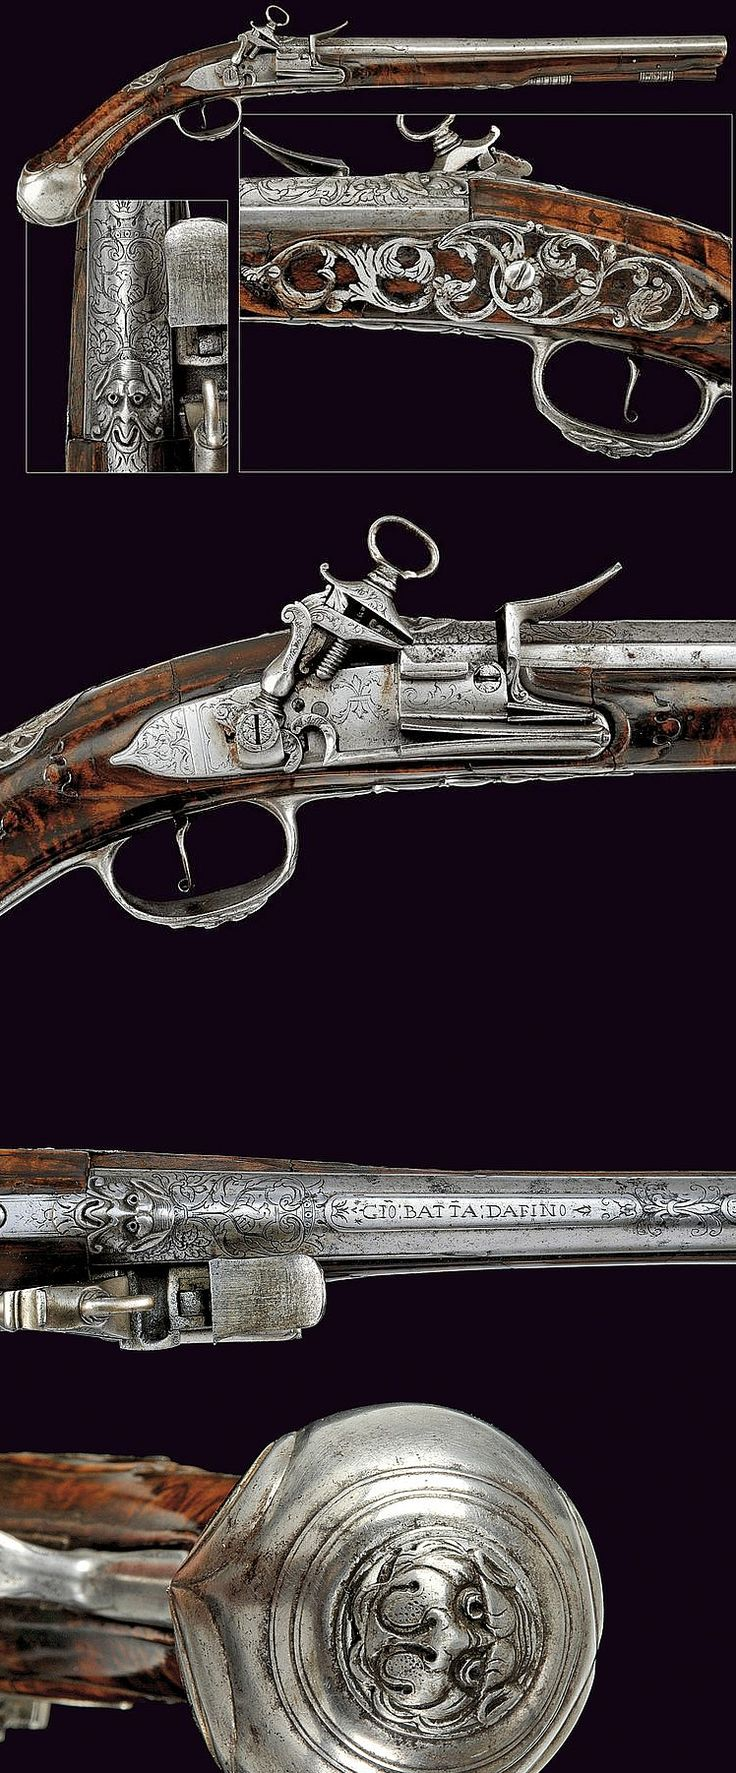 A flintlock pistol by Harvey of noble property, dating: late 17th Century provenance: Central Italy